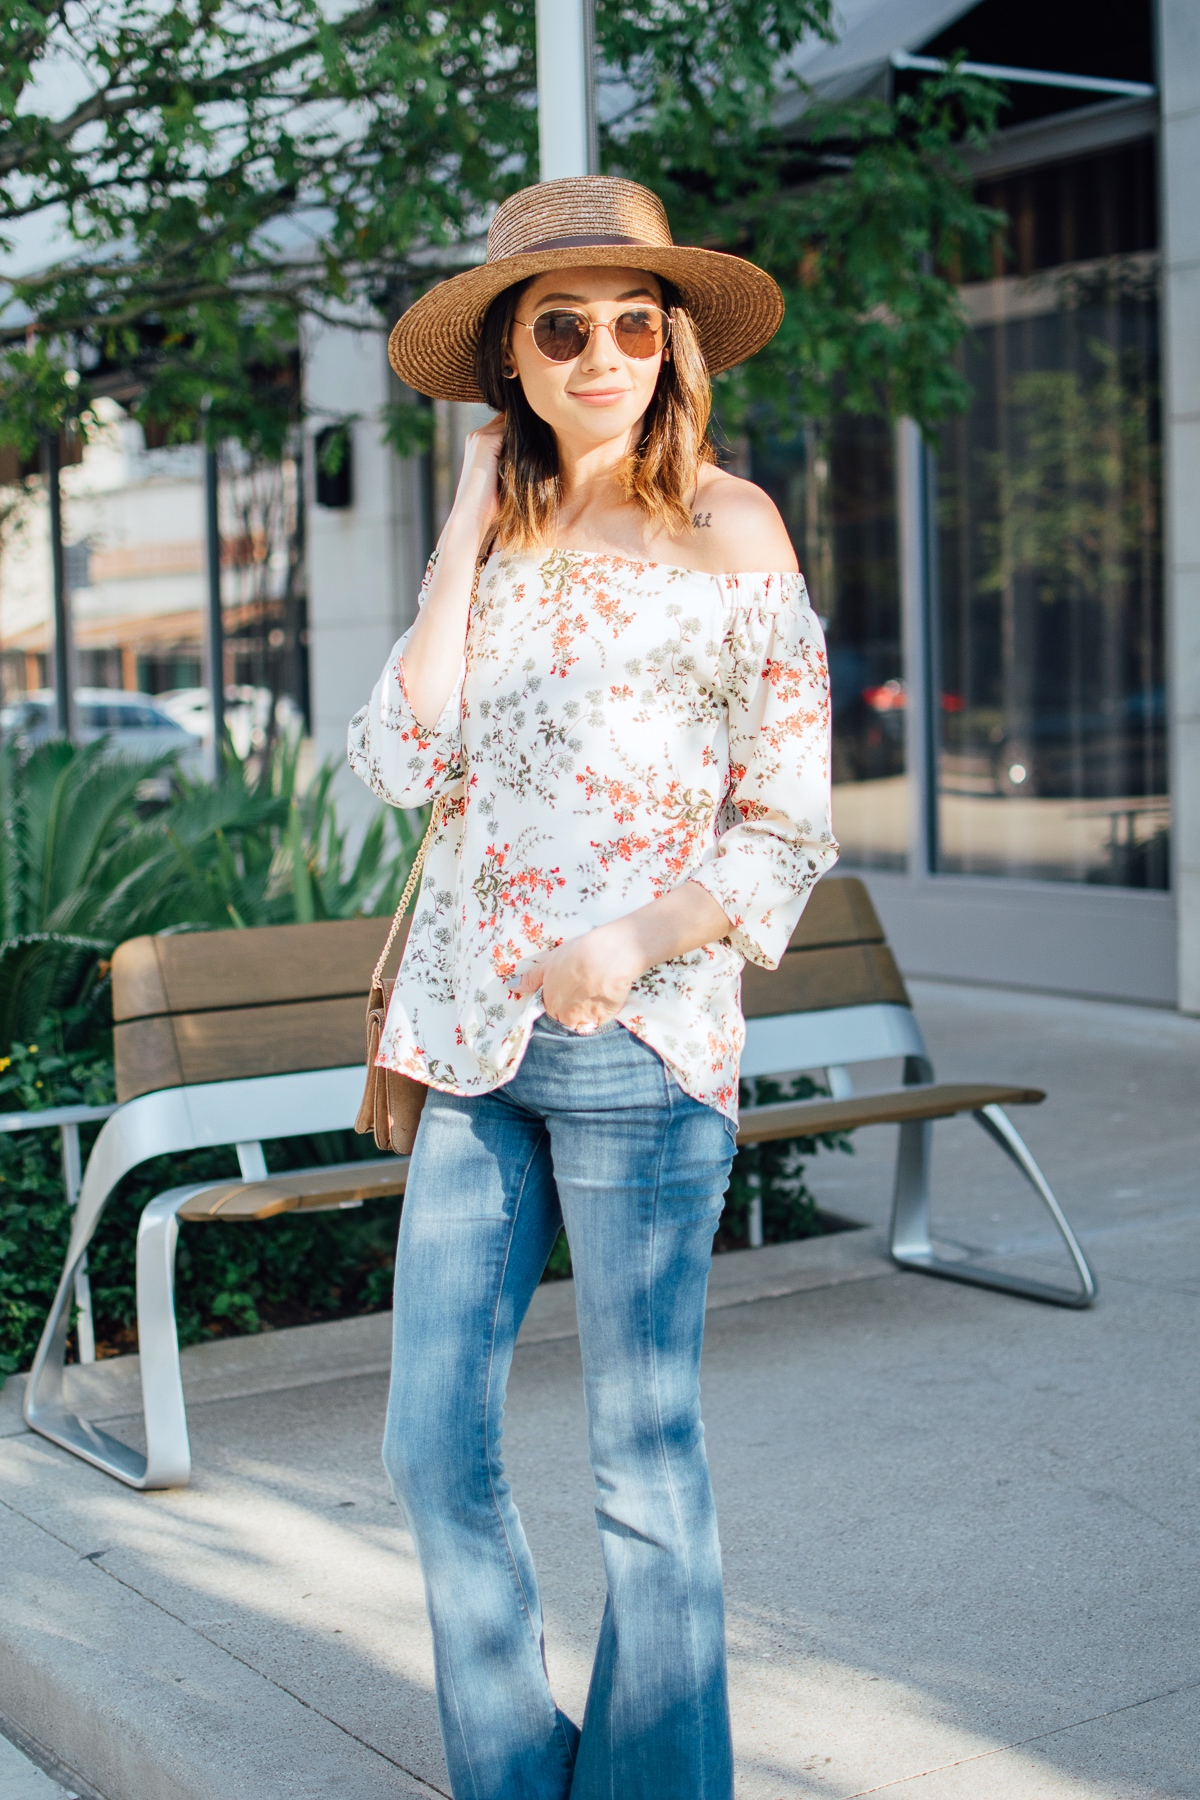 Floral off-the-shoulder-top and flare jeans